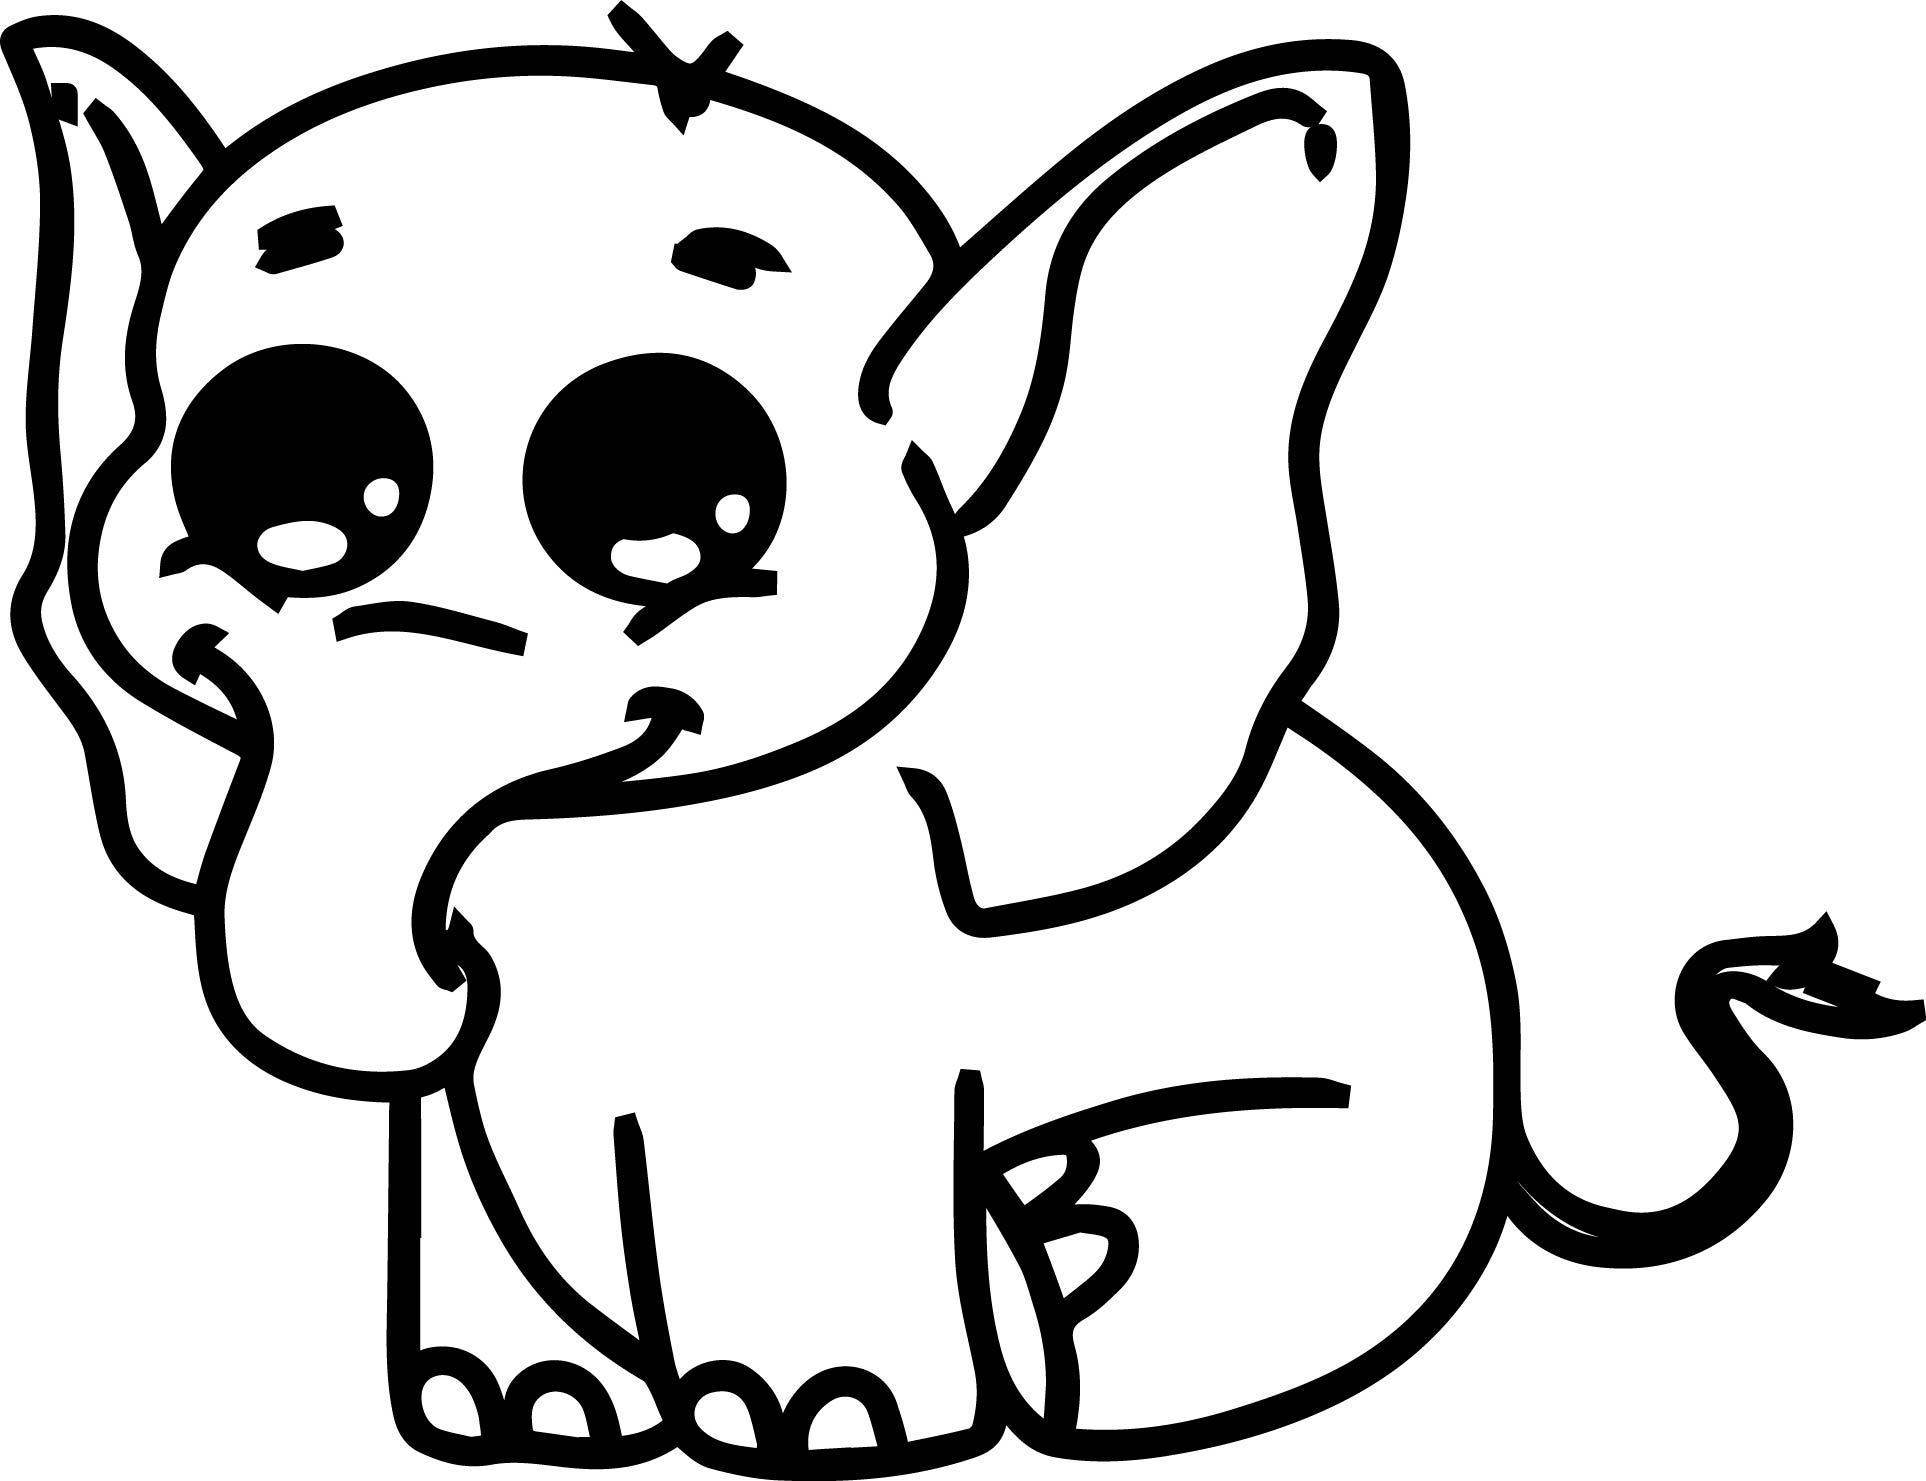 coloring book elephant images elephant coloring pages coloring home elephant coloring book images